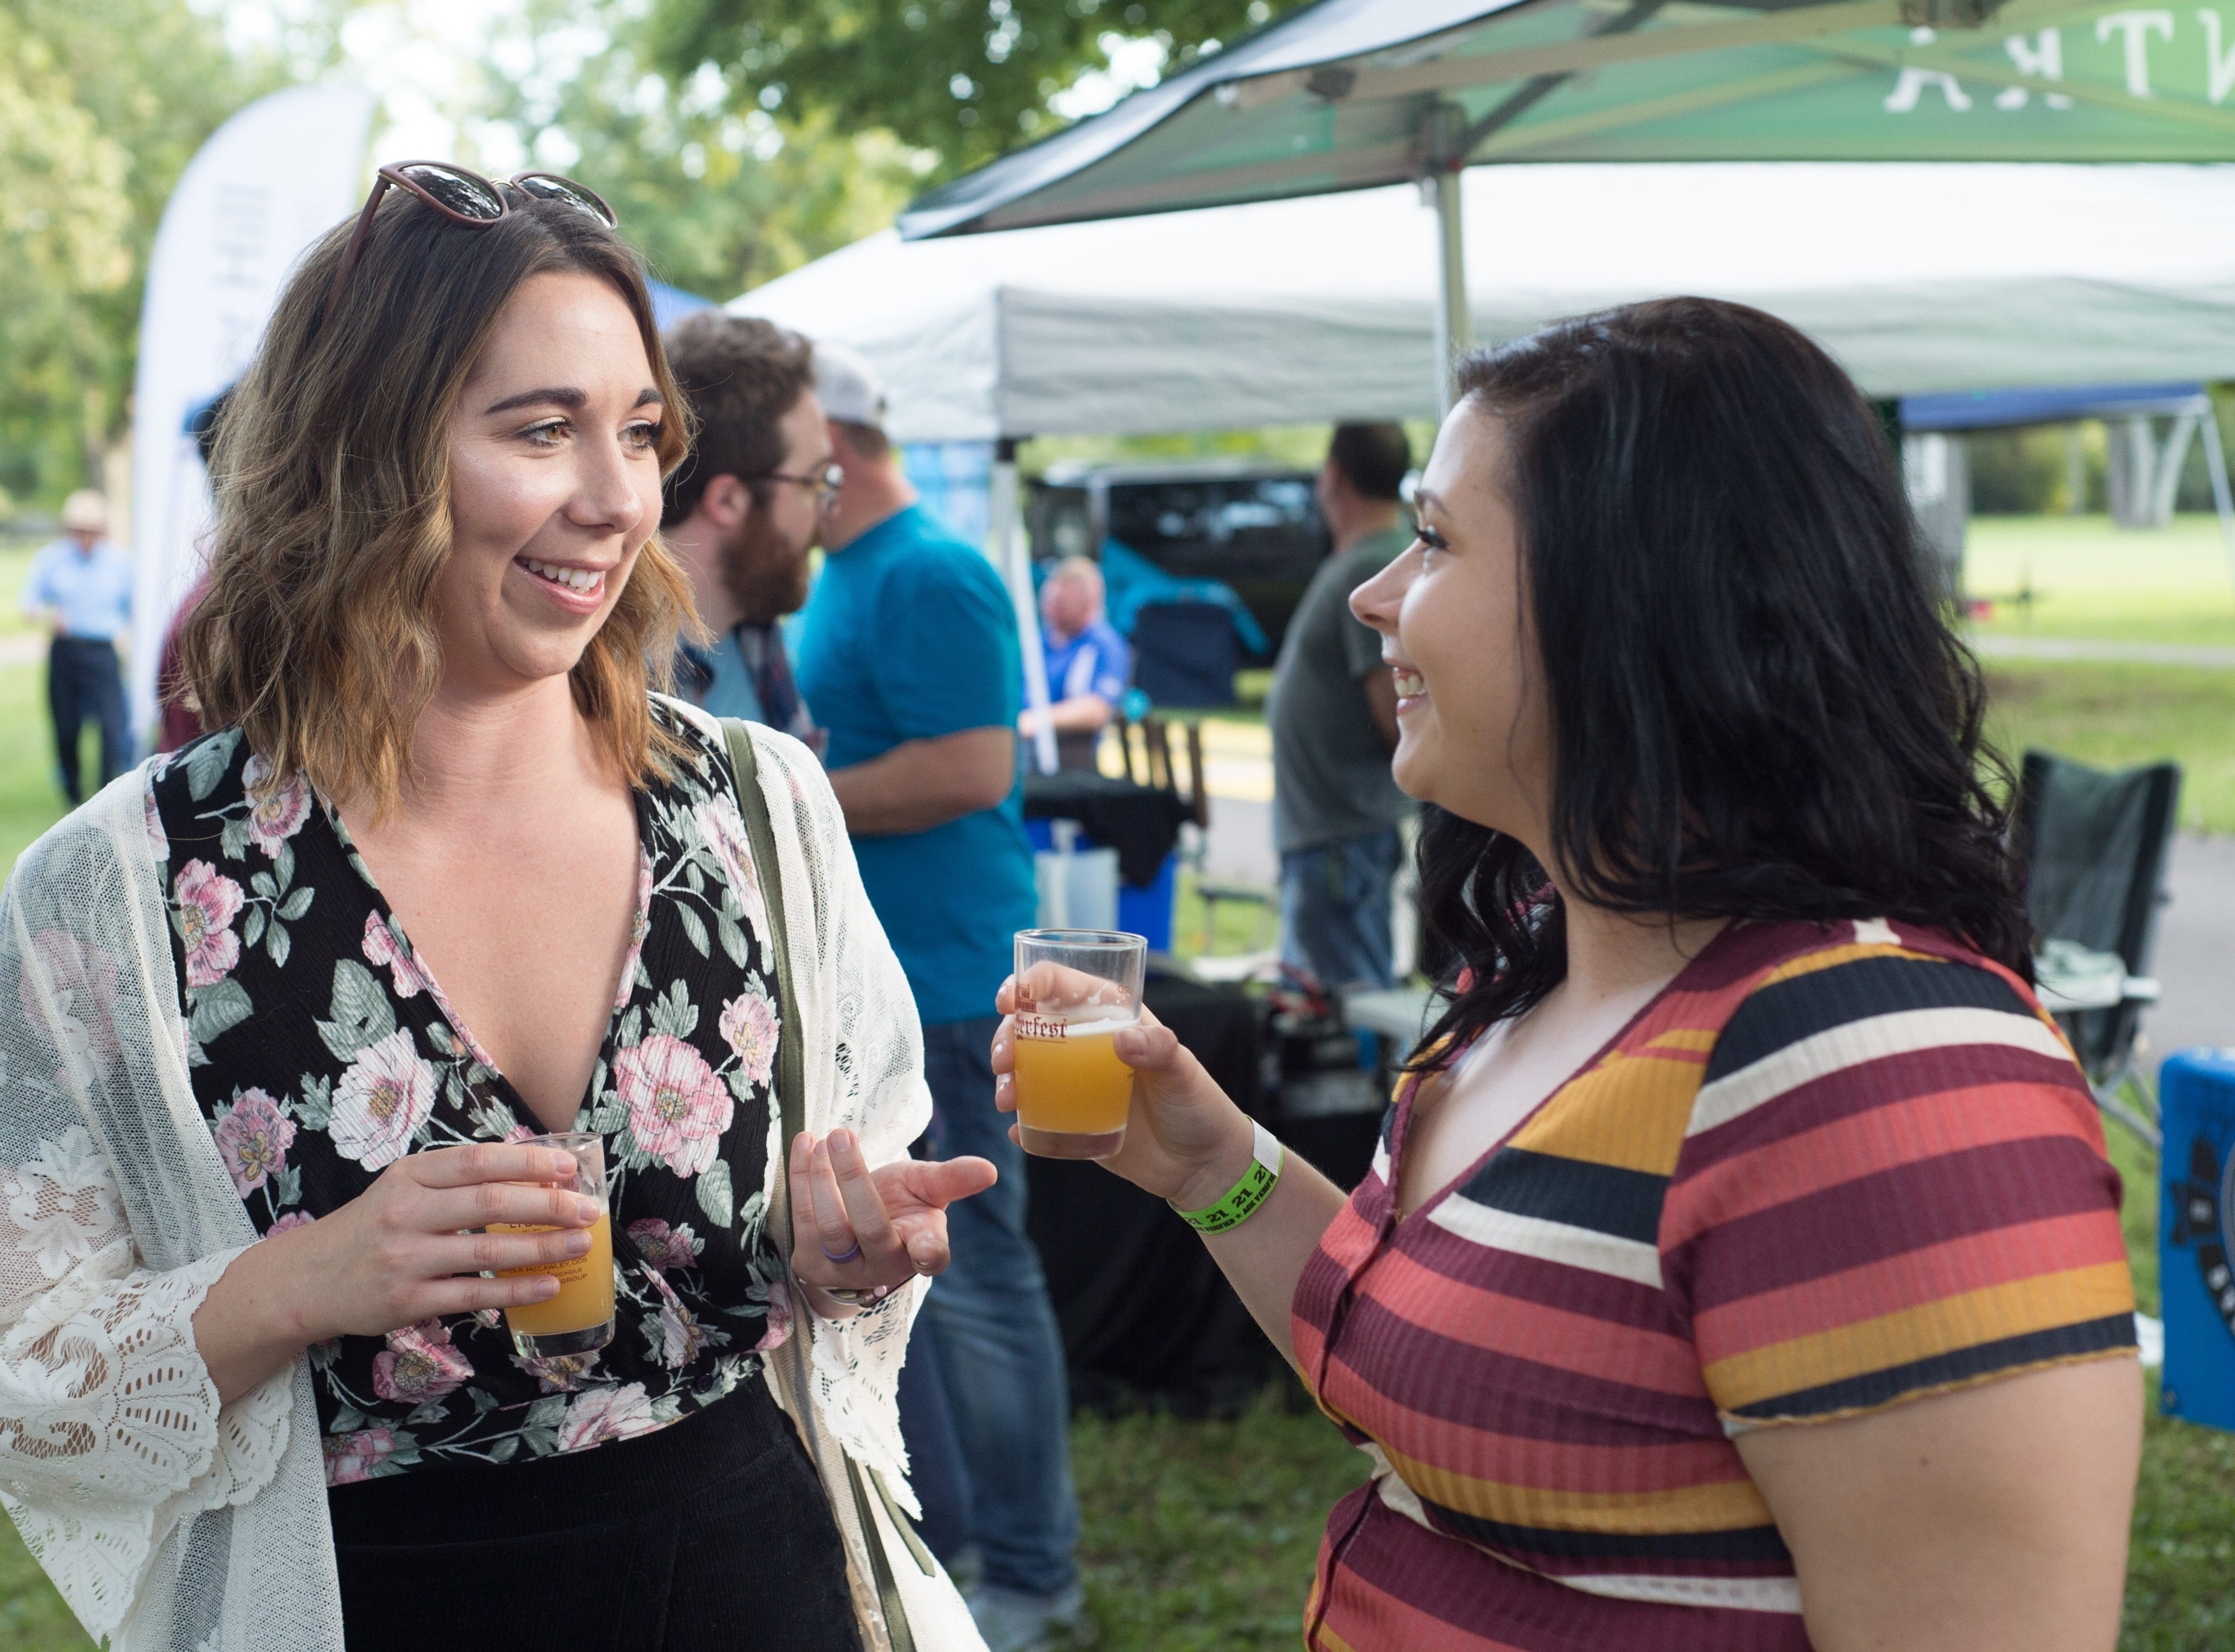 The community came out to spend time with friends at Oktoberfest at Oaklands Mansion in Murfreesboro on Saturday, Sept. 29.